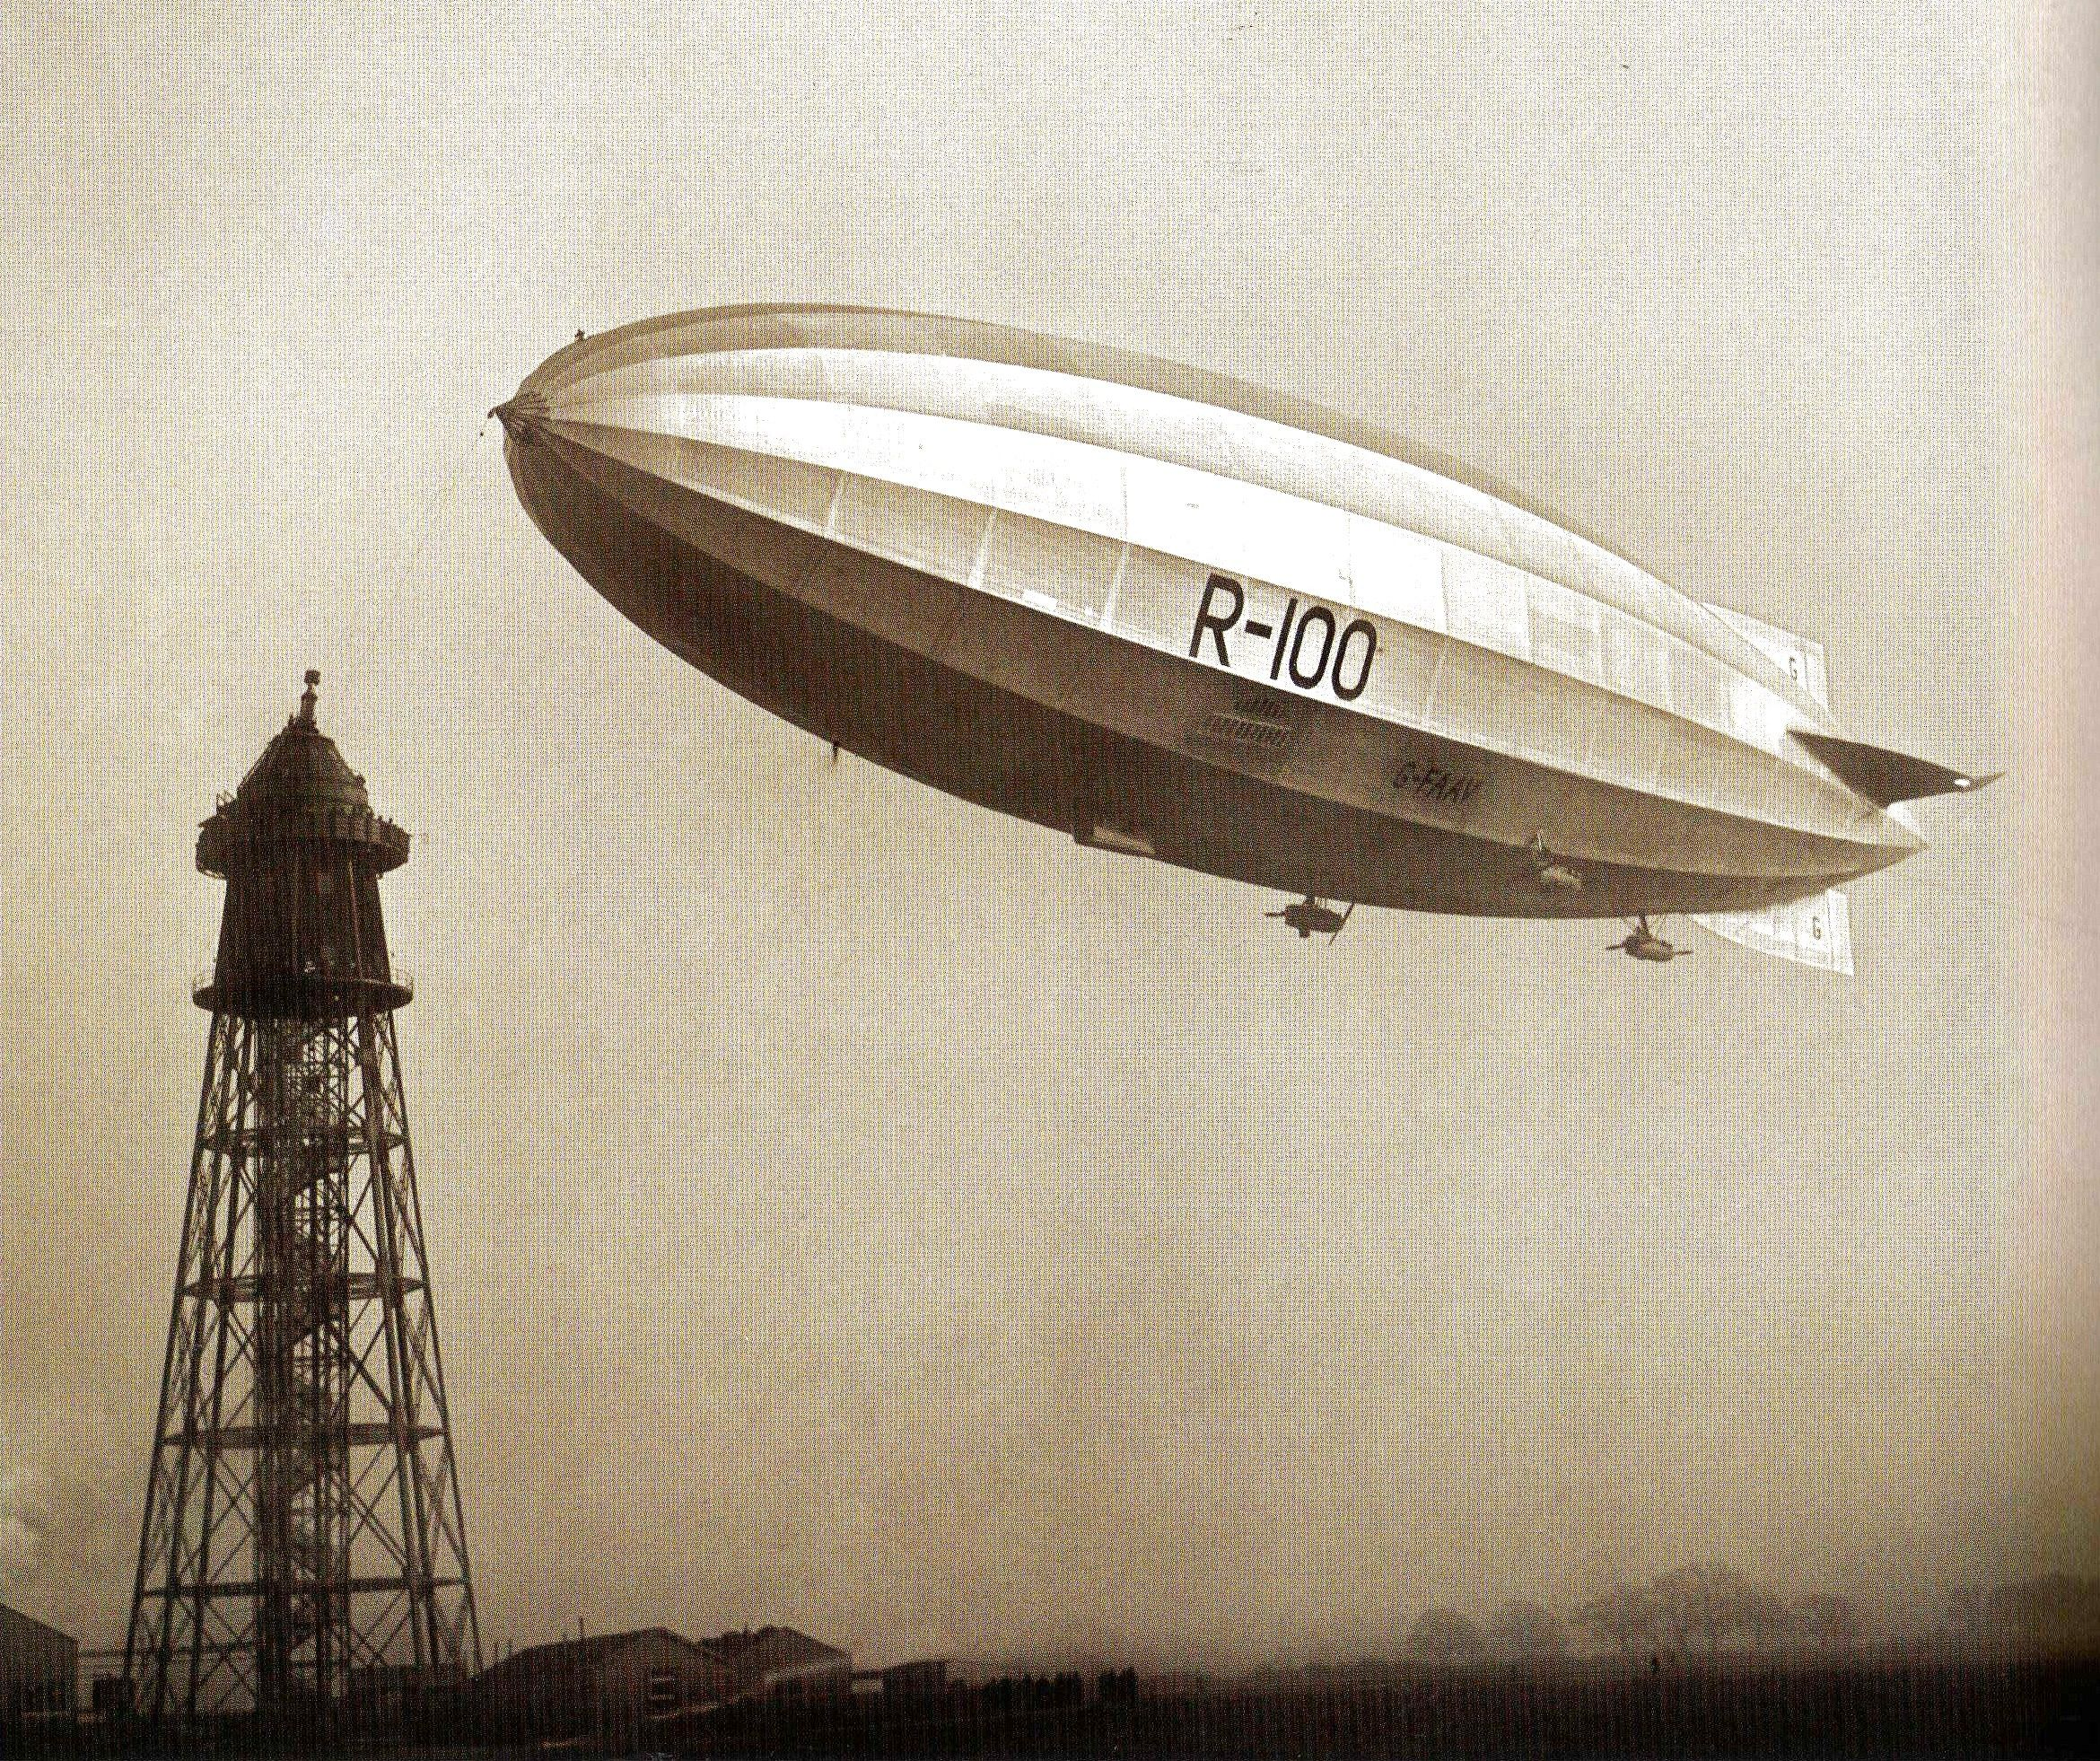 R100 nearing the mooring mast at Cardington, during the